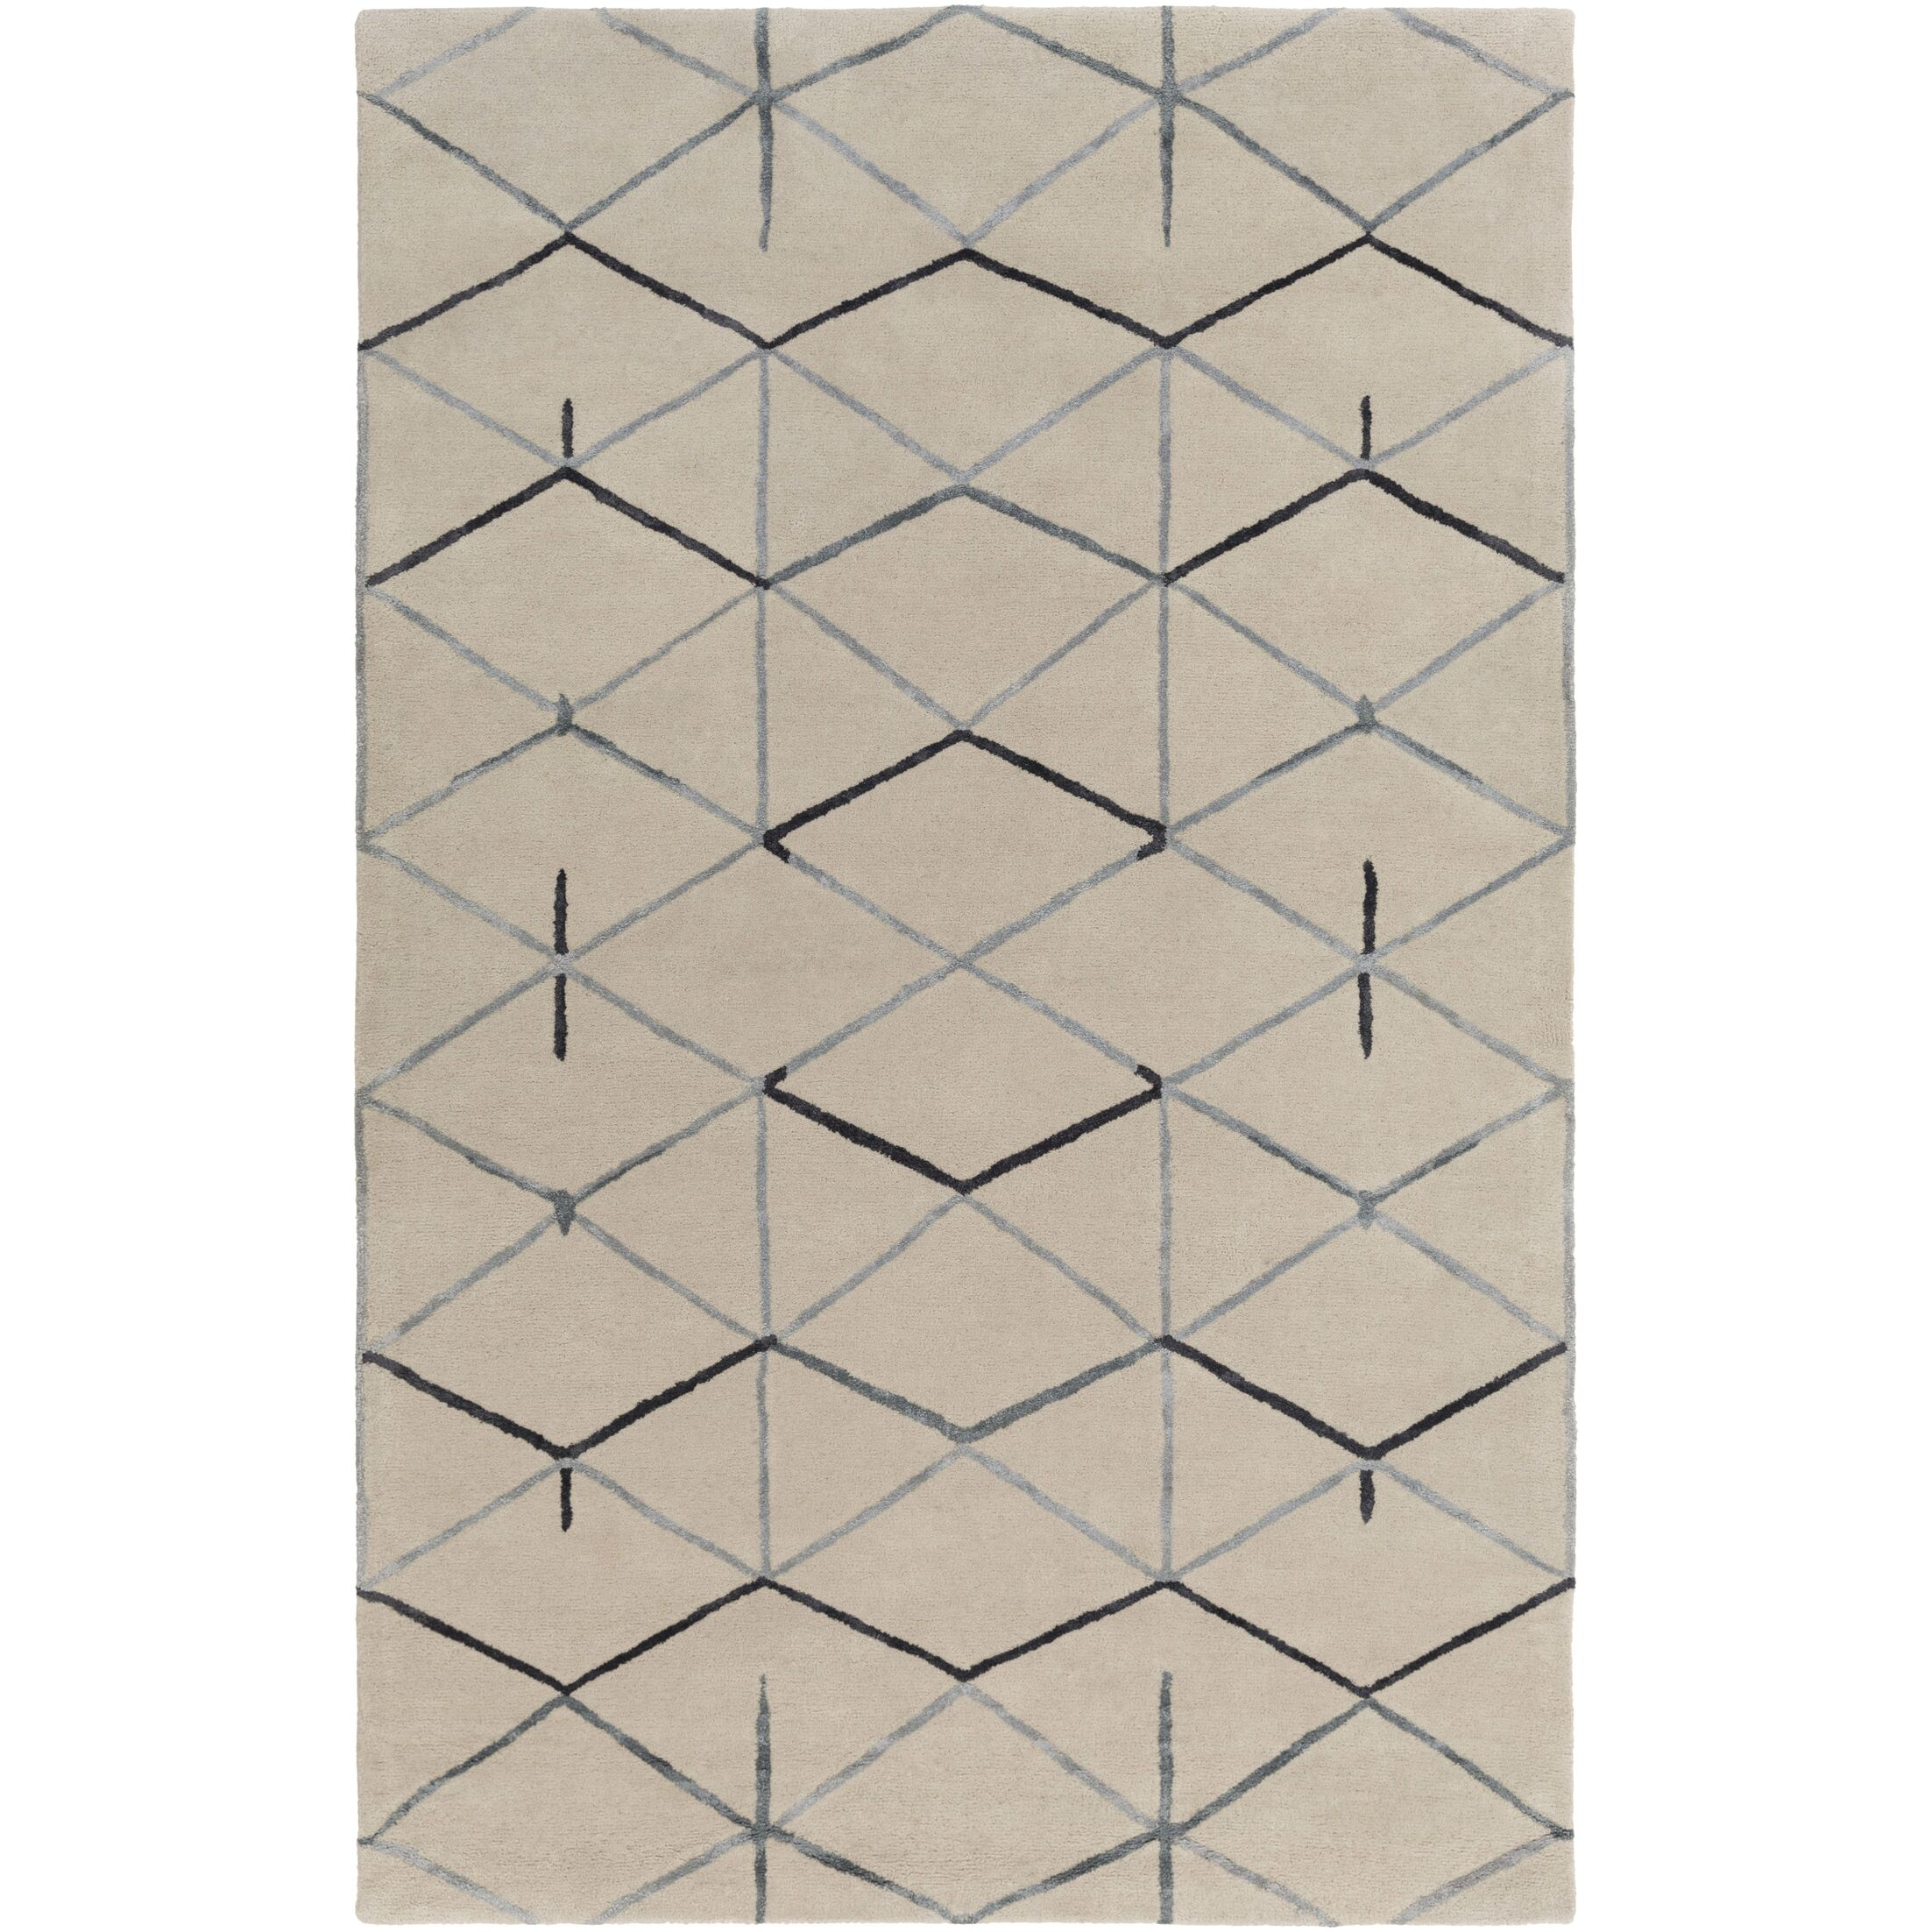 Romola Hand-Tufted Medium Gray Area Rug Rug Size: Runner 2'6